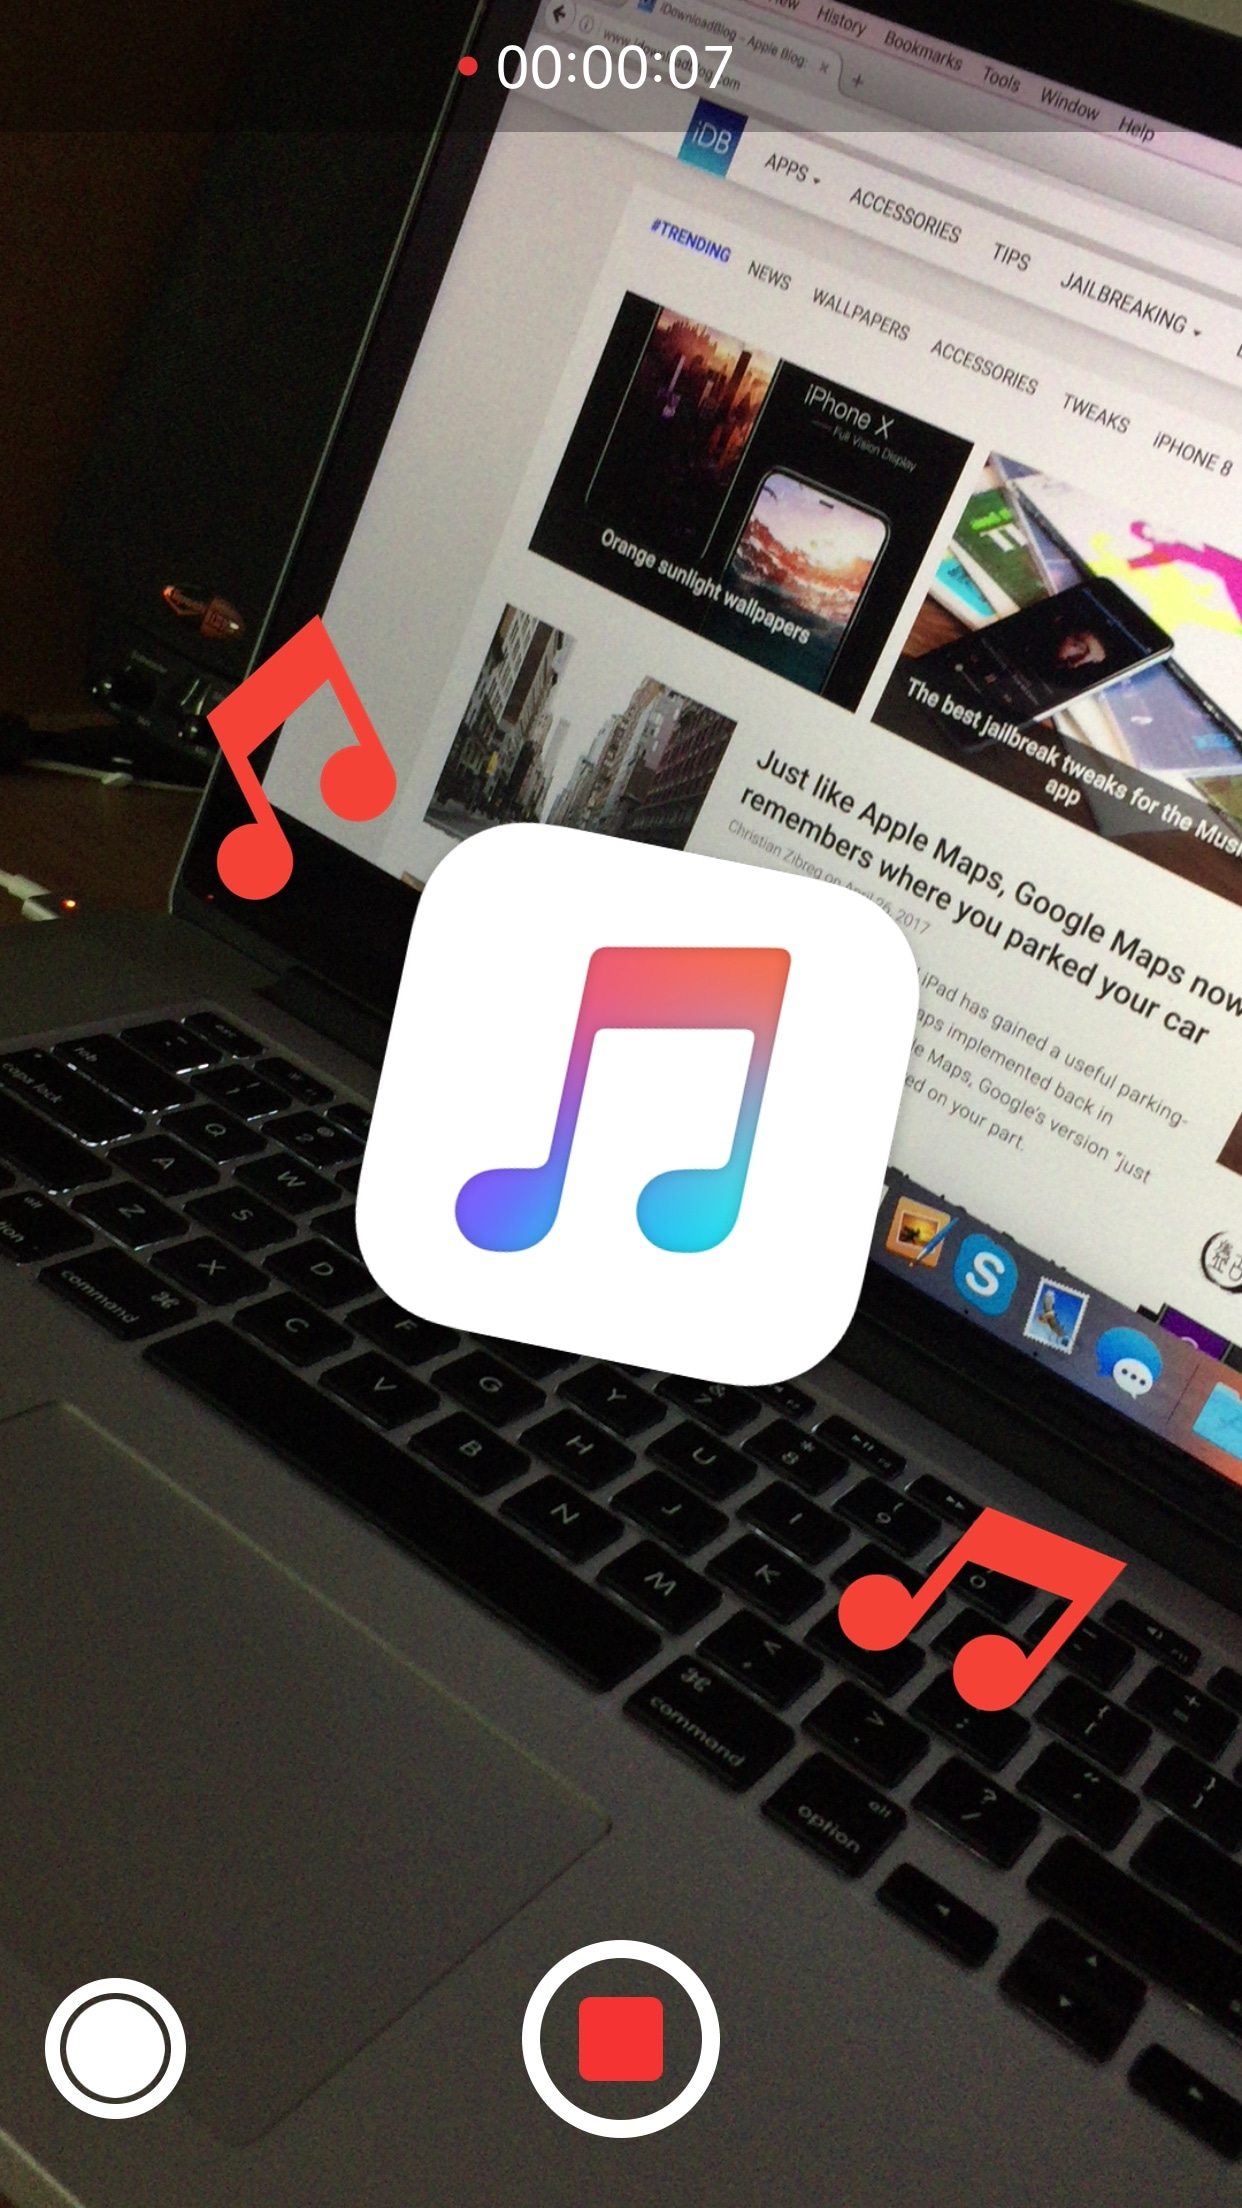 This tweak keeps your music playing while you record video